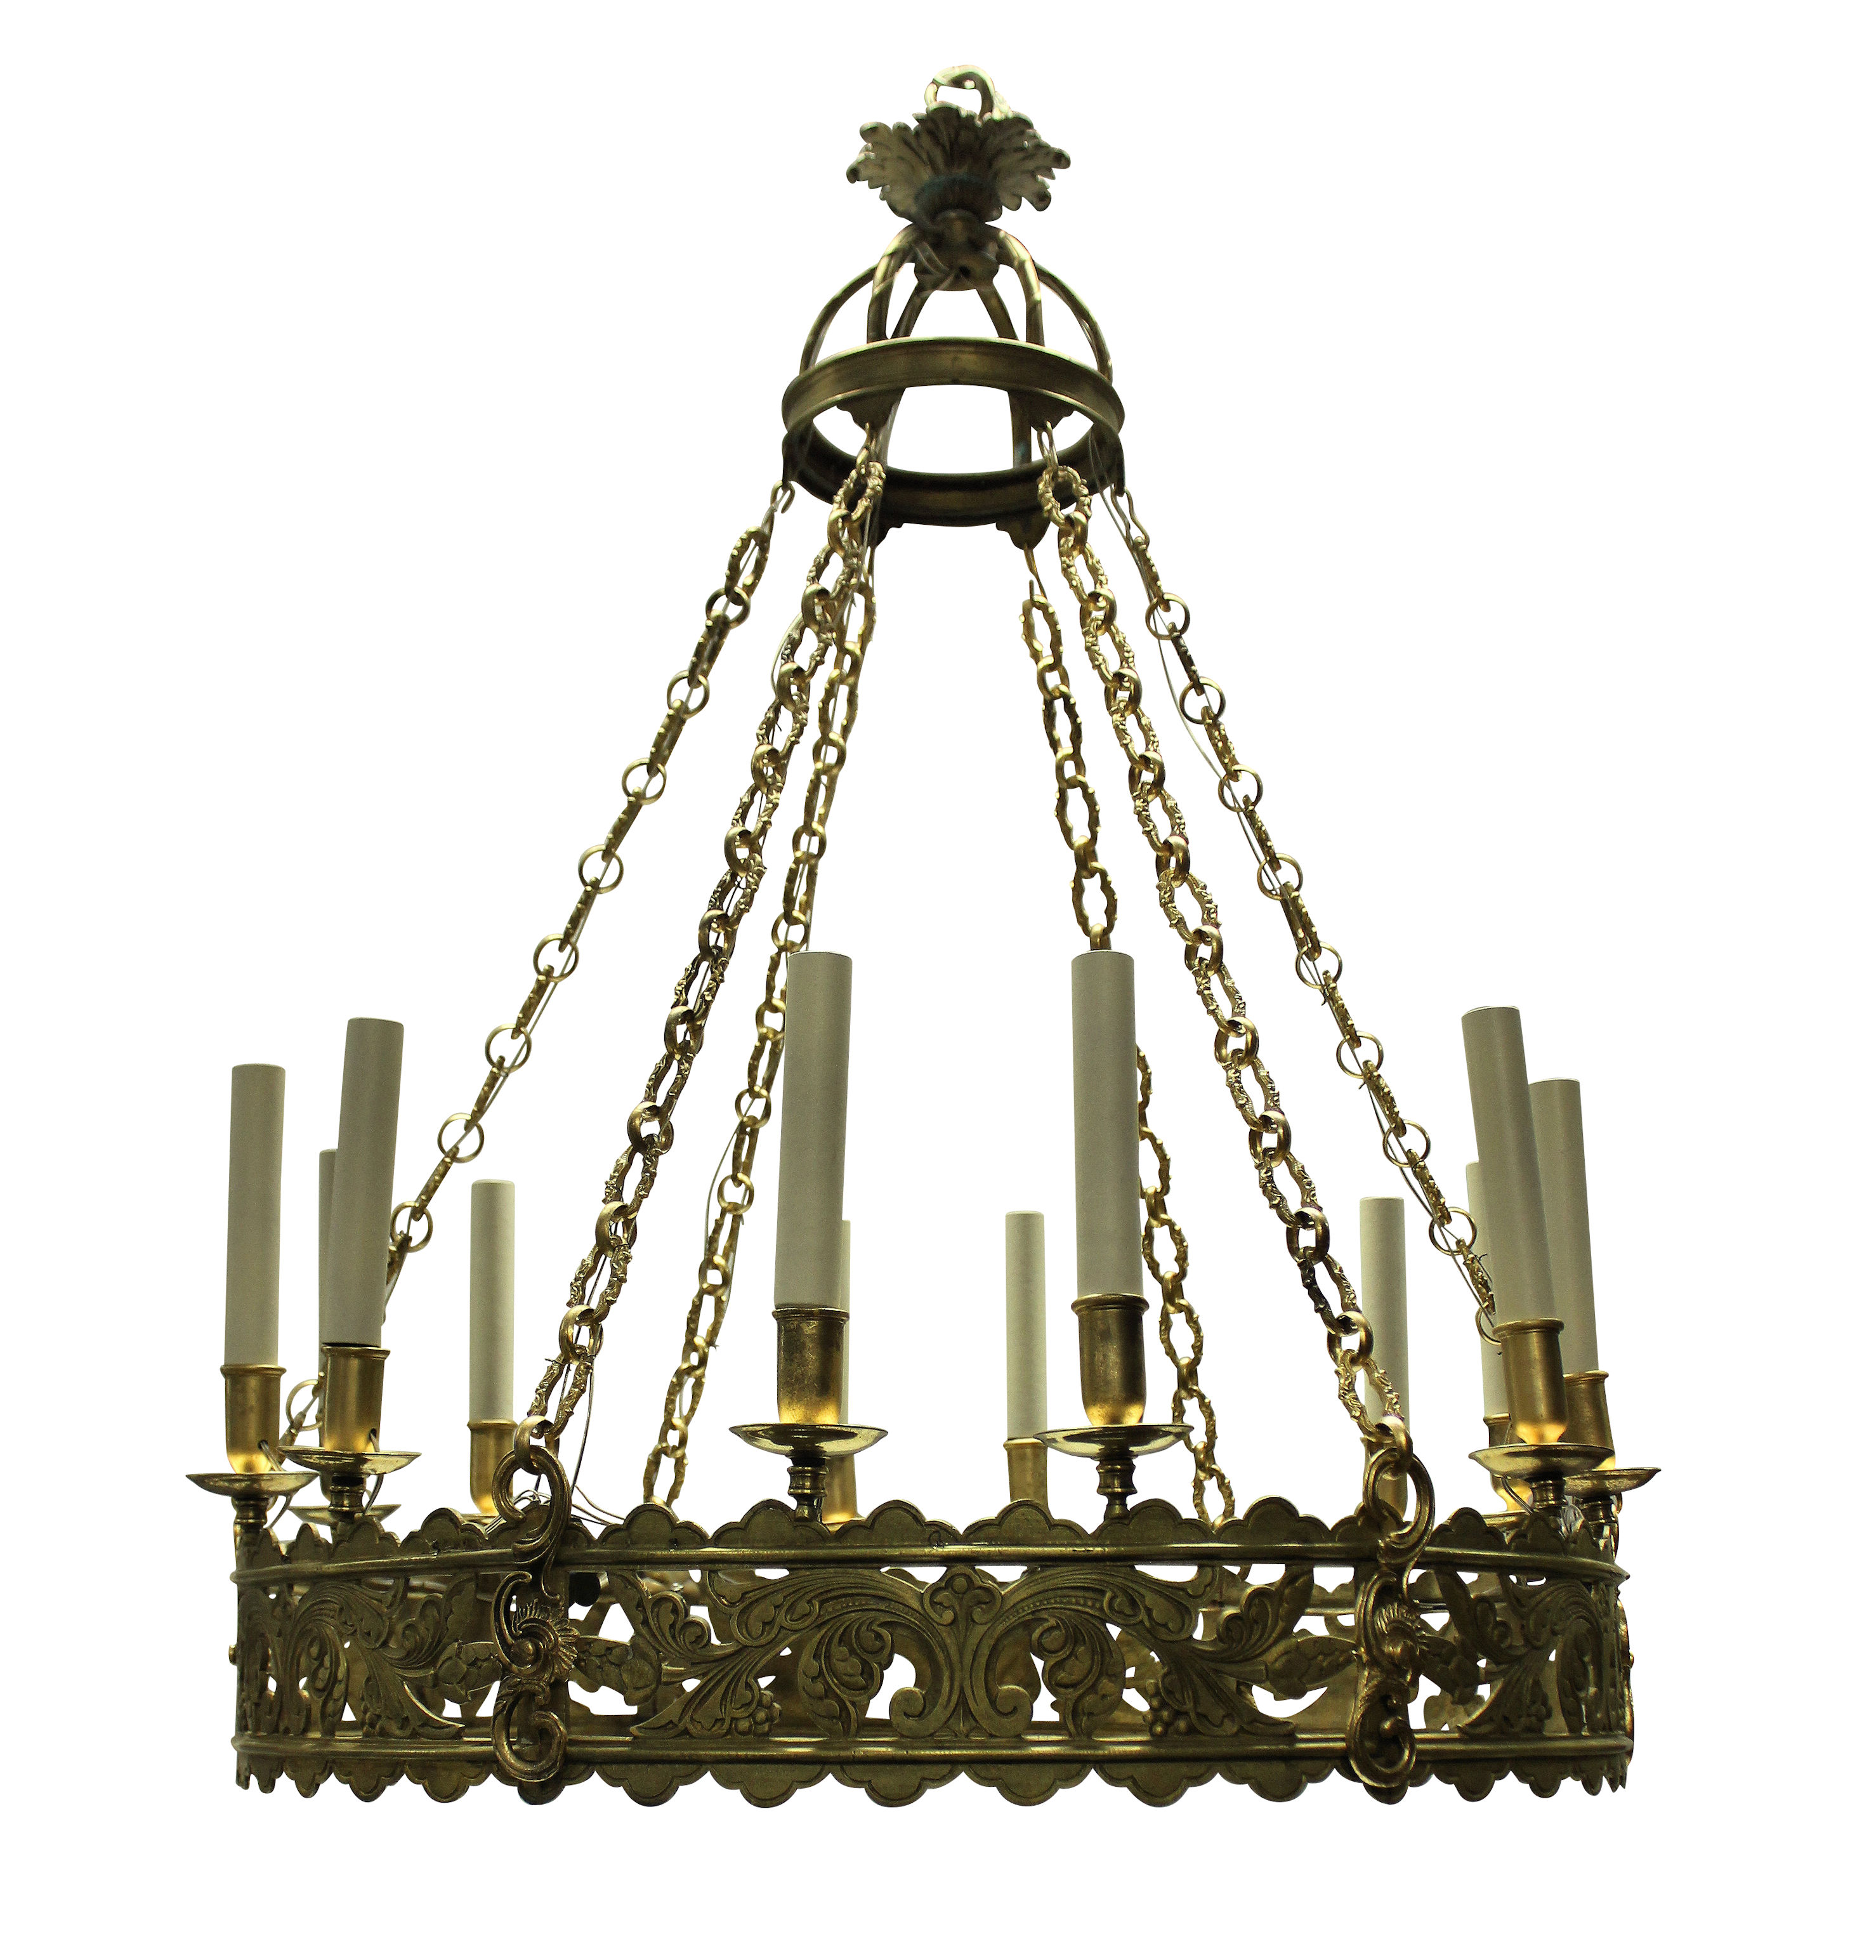 A LARGE GOTHIC CORONA CHANDELIER